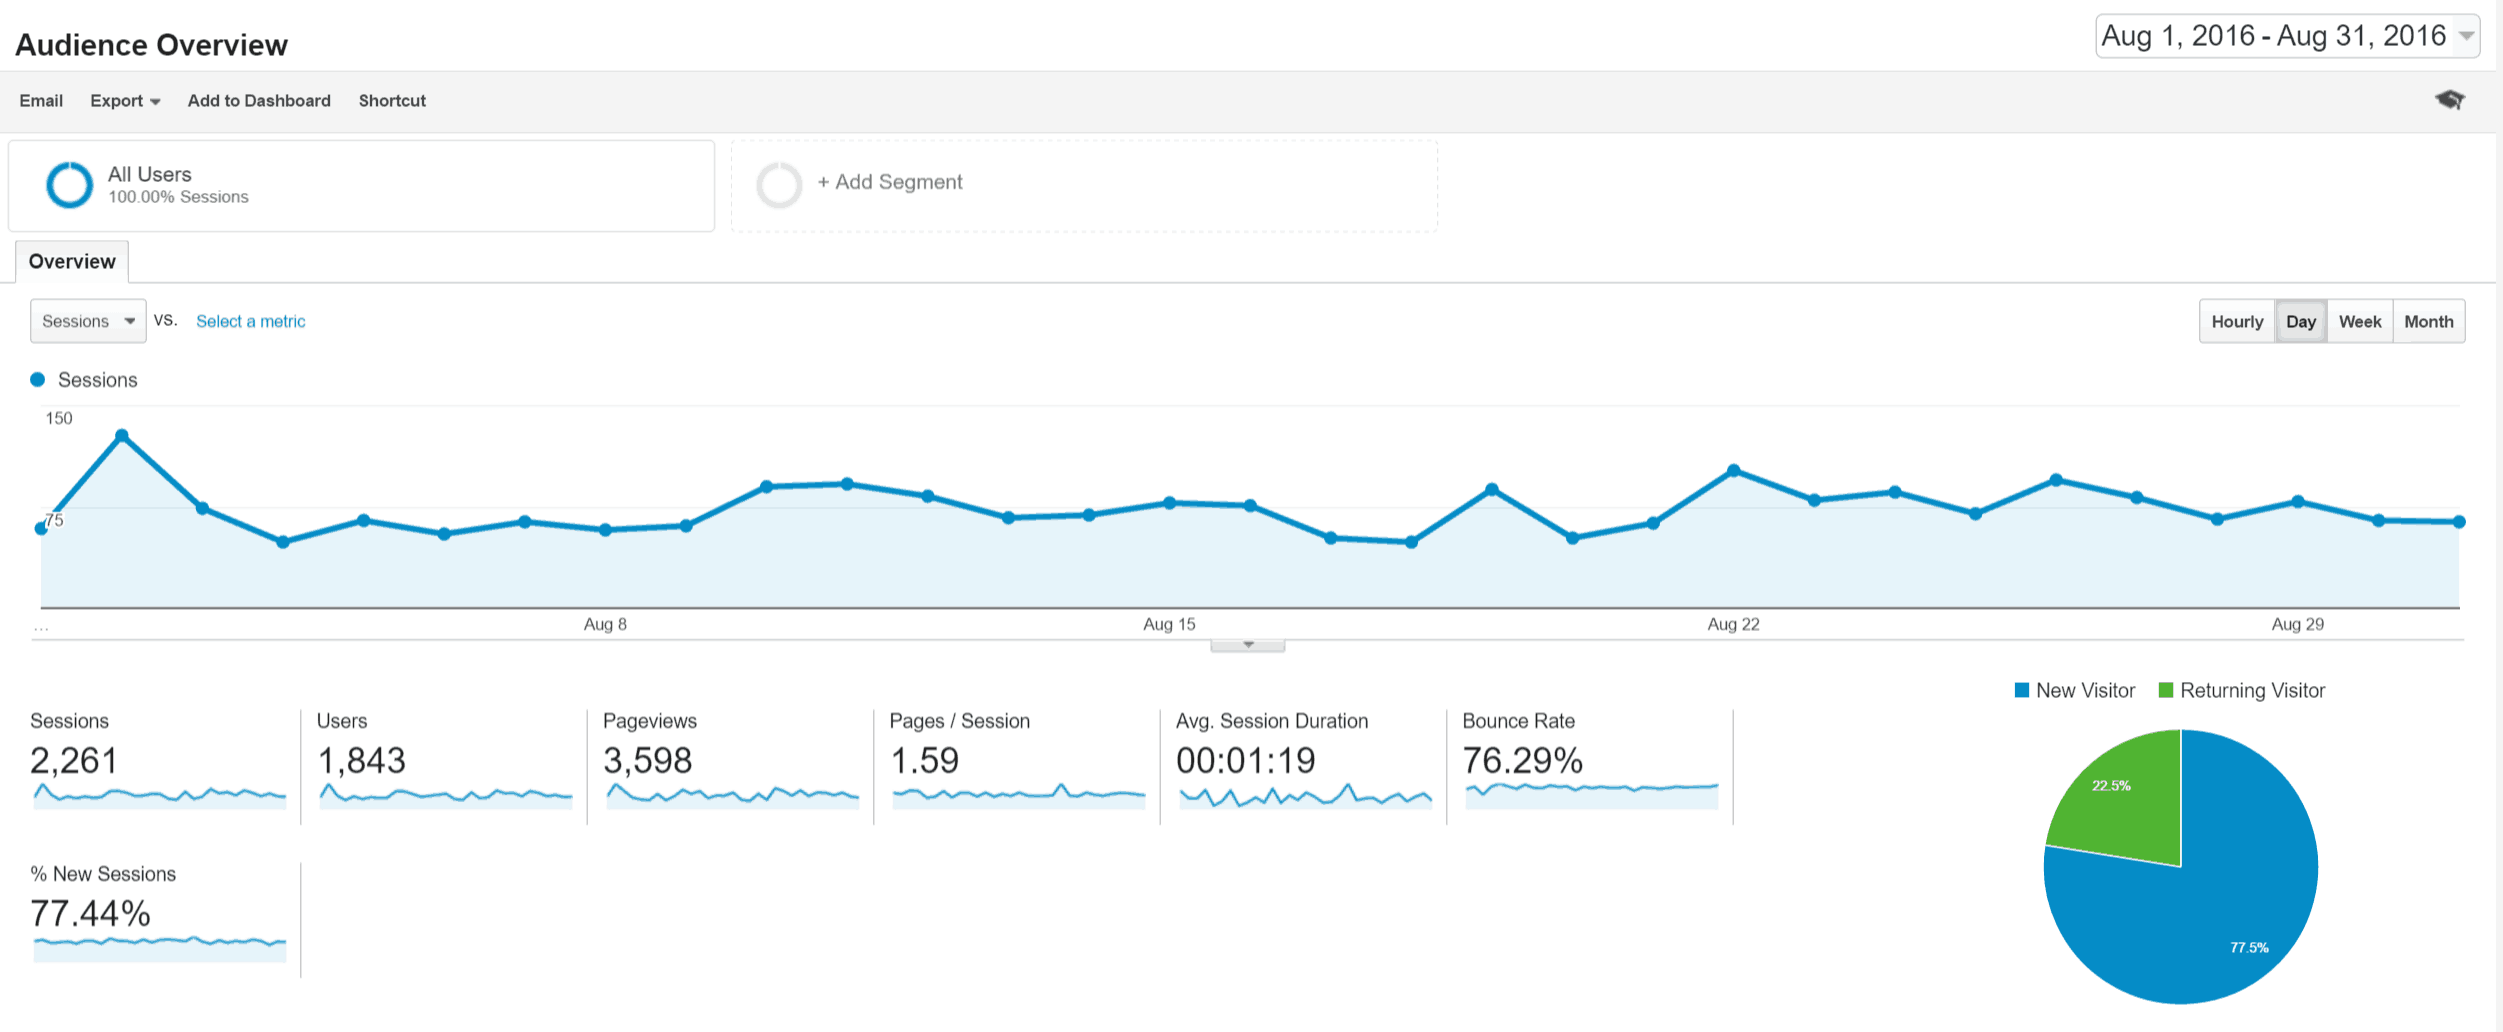 august-audience-overview